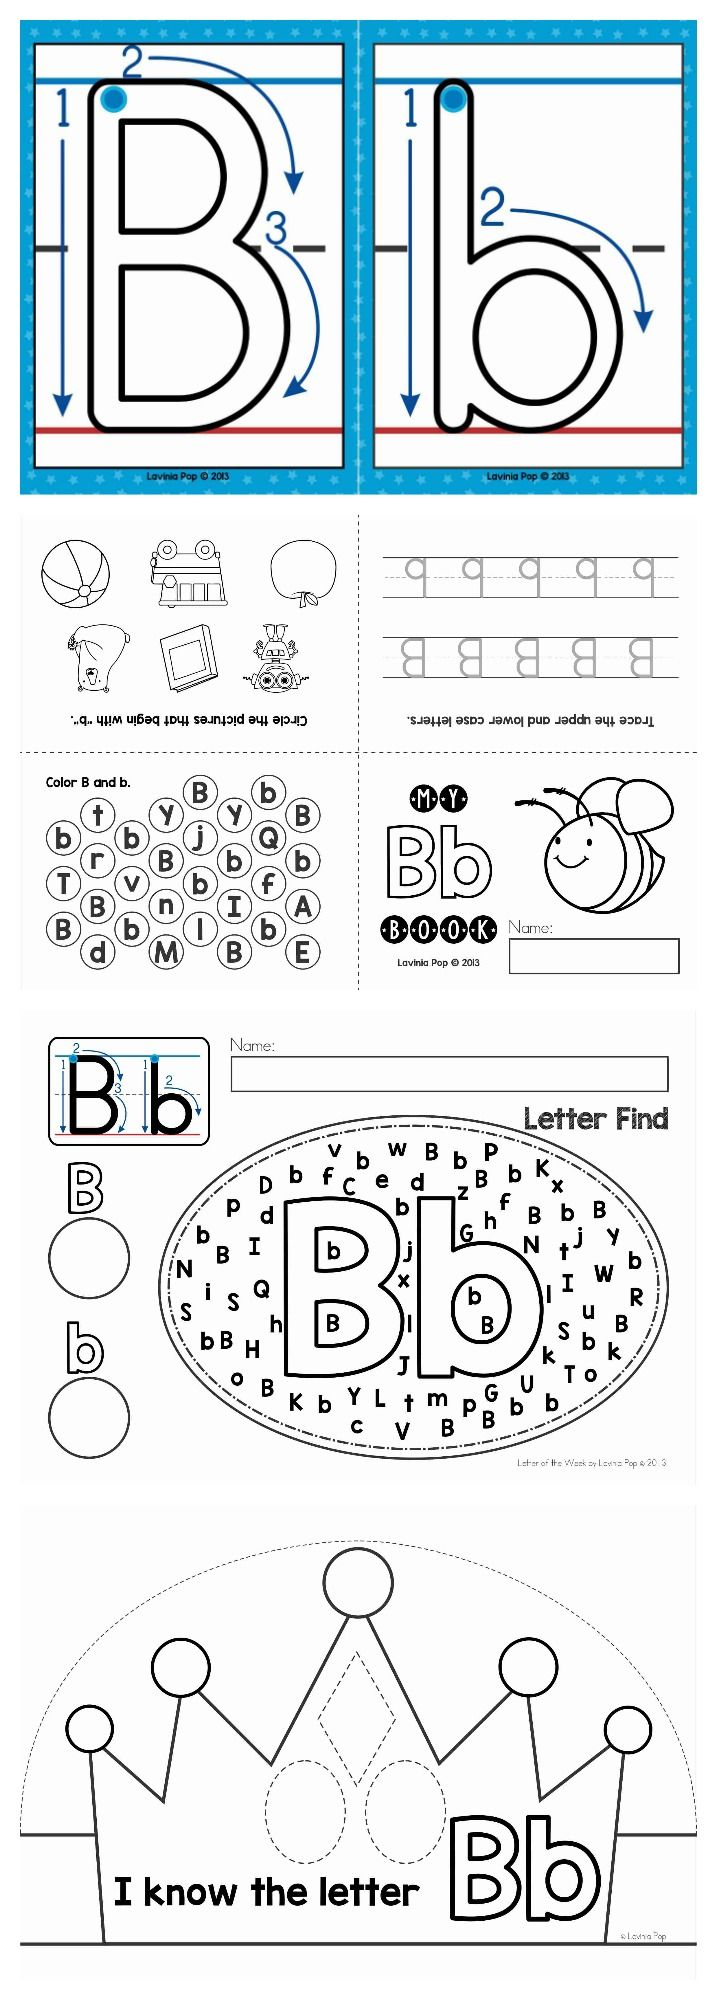 FREE Letter of the Week resource jampacked with worksheets and – Free Worksheets for Teachers